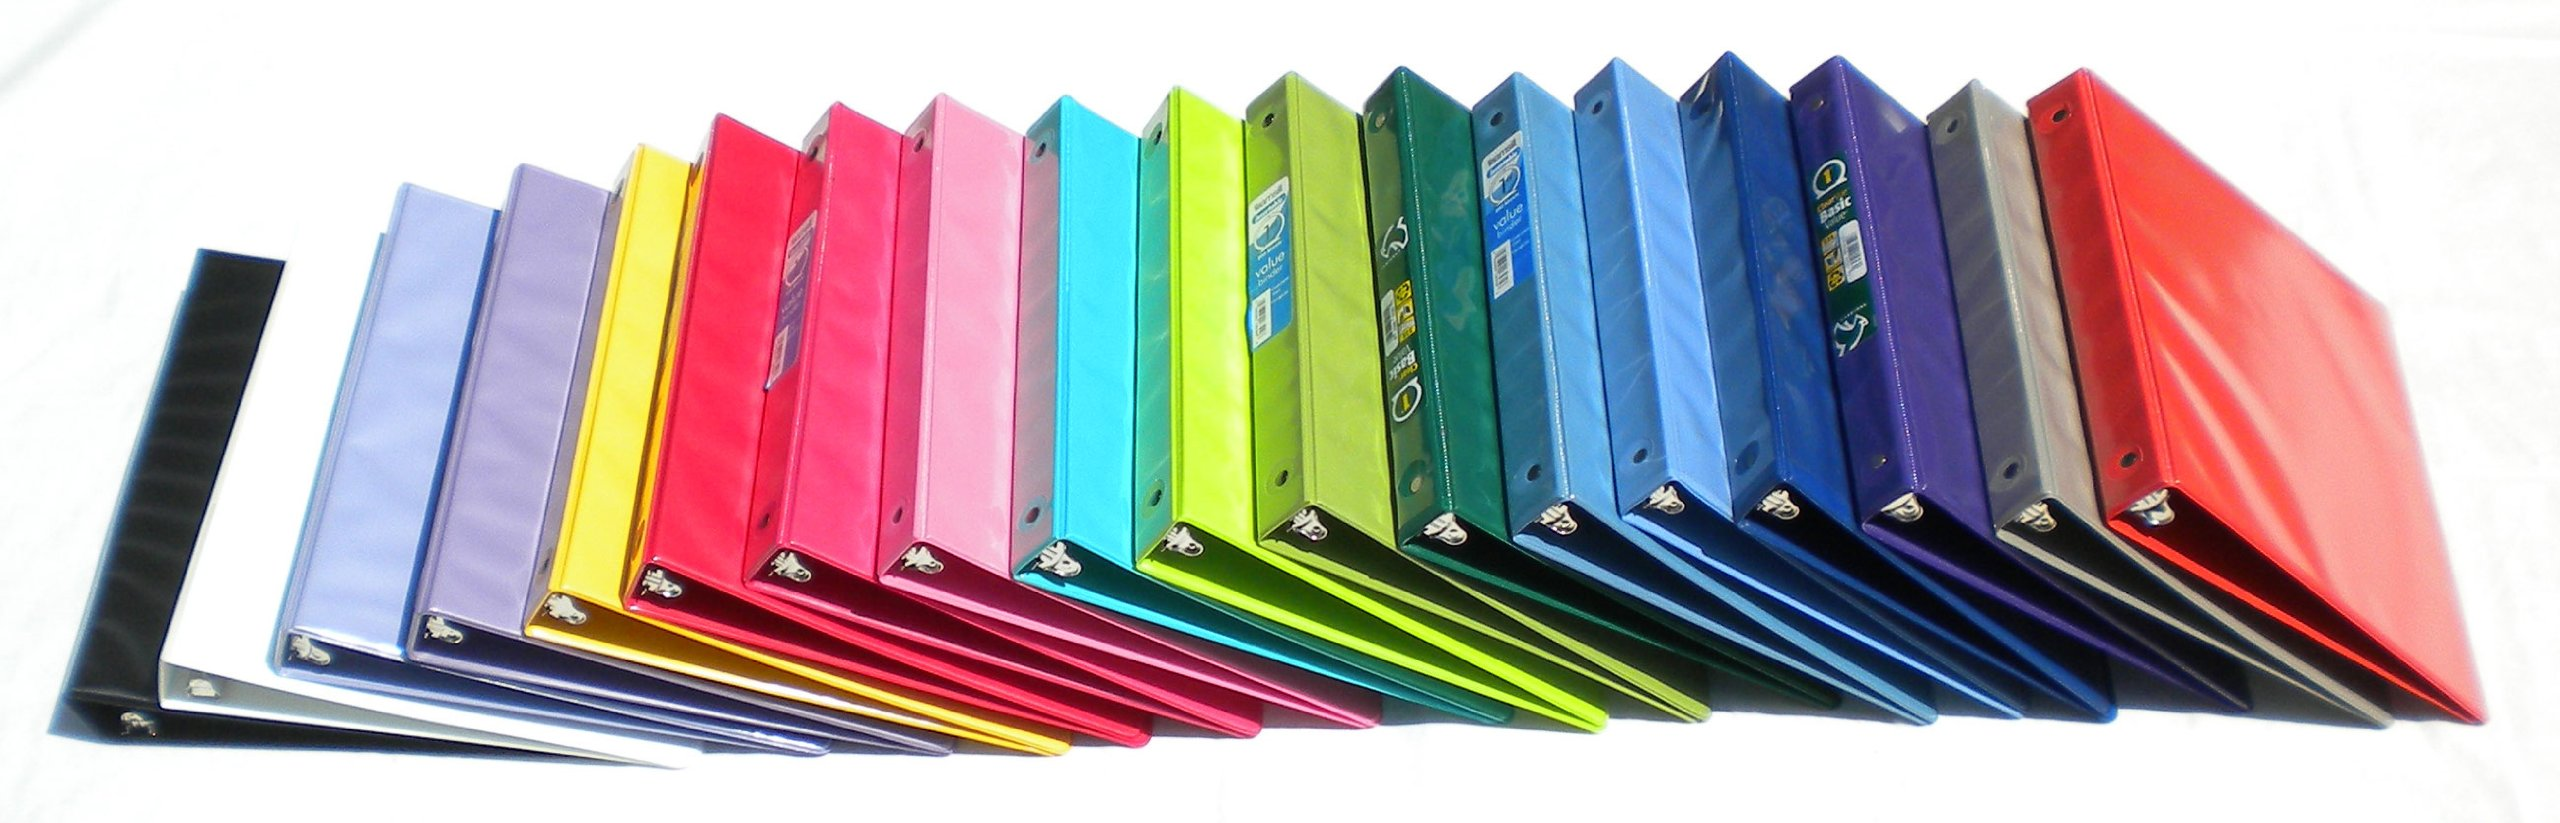 Samsill Assorted Colors 3-Ring View-Binders, 1-Inch Capacity, 8.5'' x 11'', with Insertion Sleeves and Inside Pockets, BOX OF 18 by Samsill (Image #1)